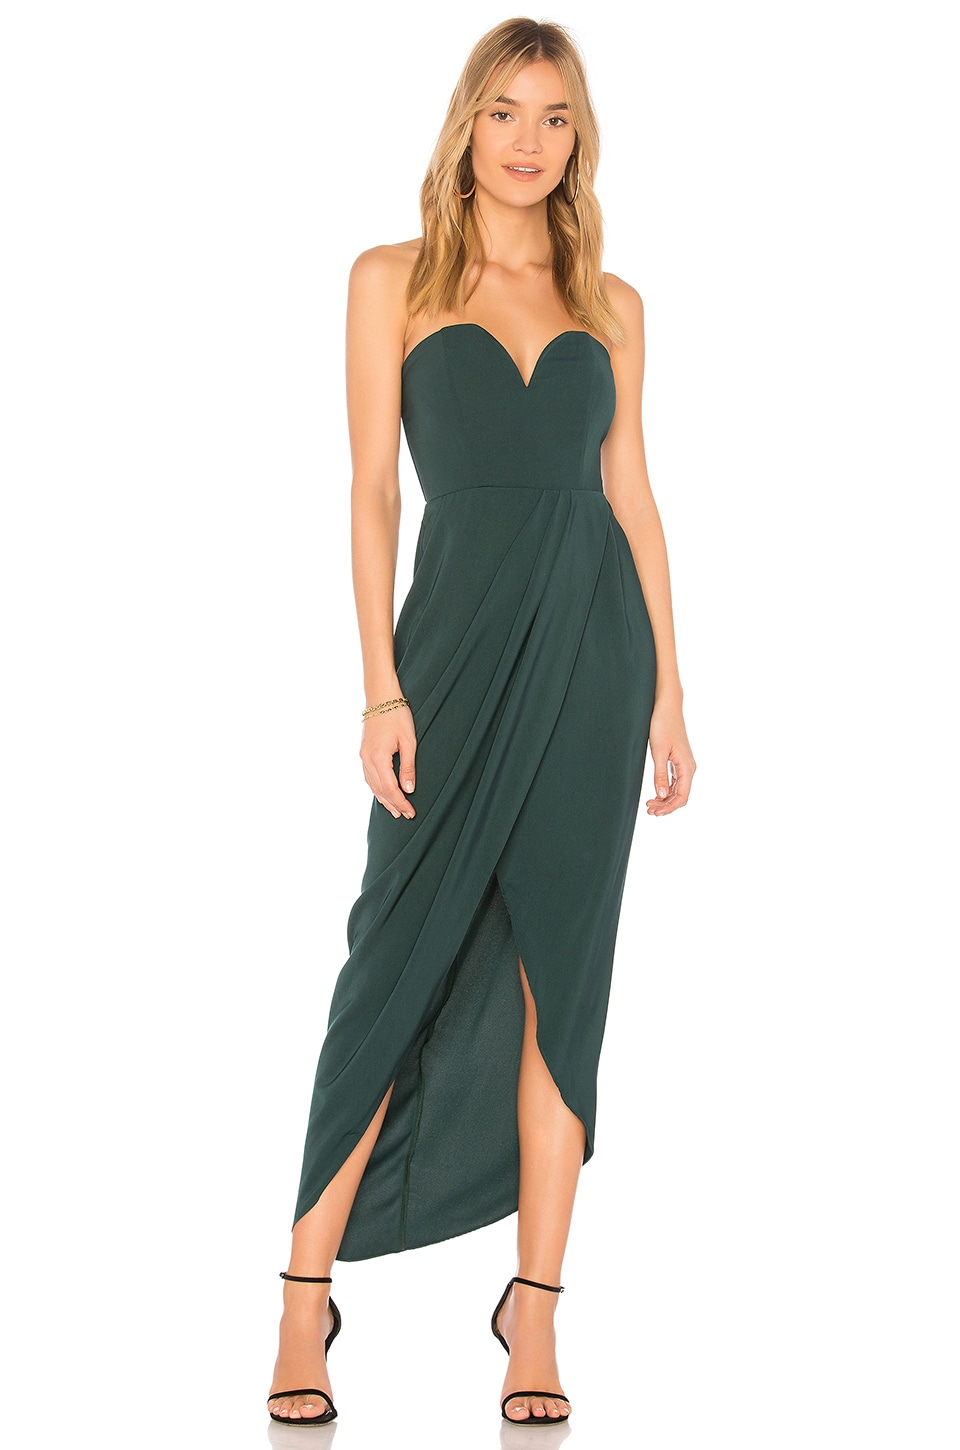 Shona Joy U Wire Bustier Draped Dress in Seaweed